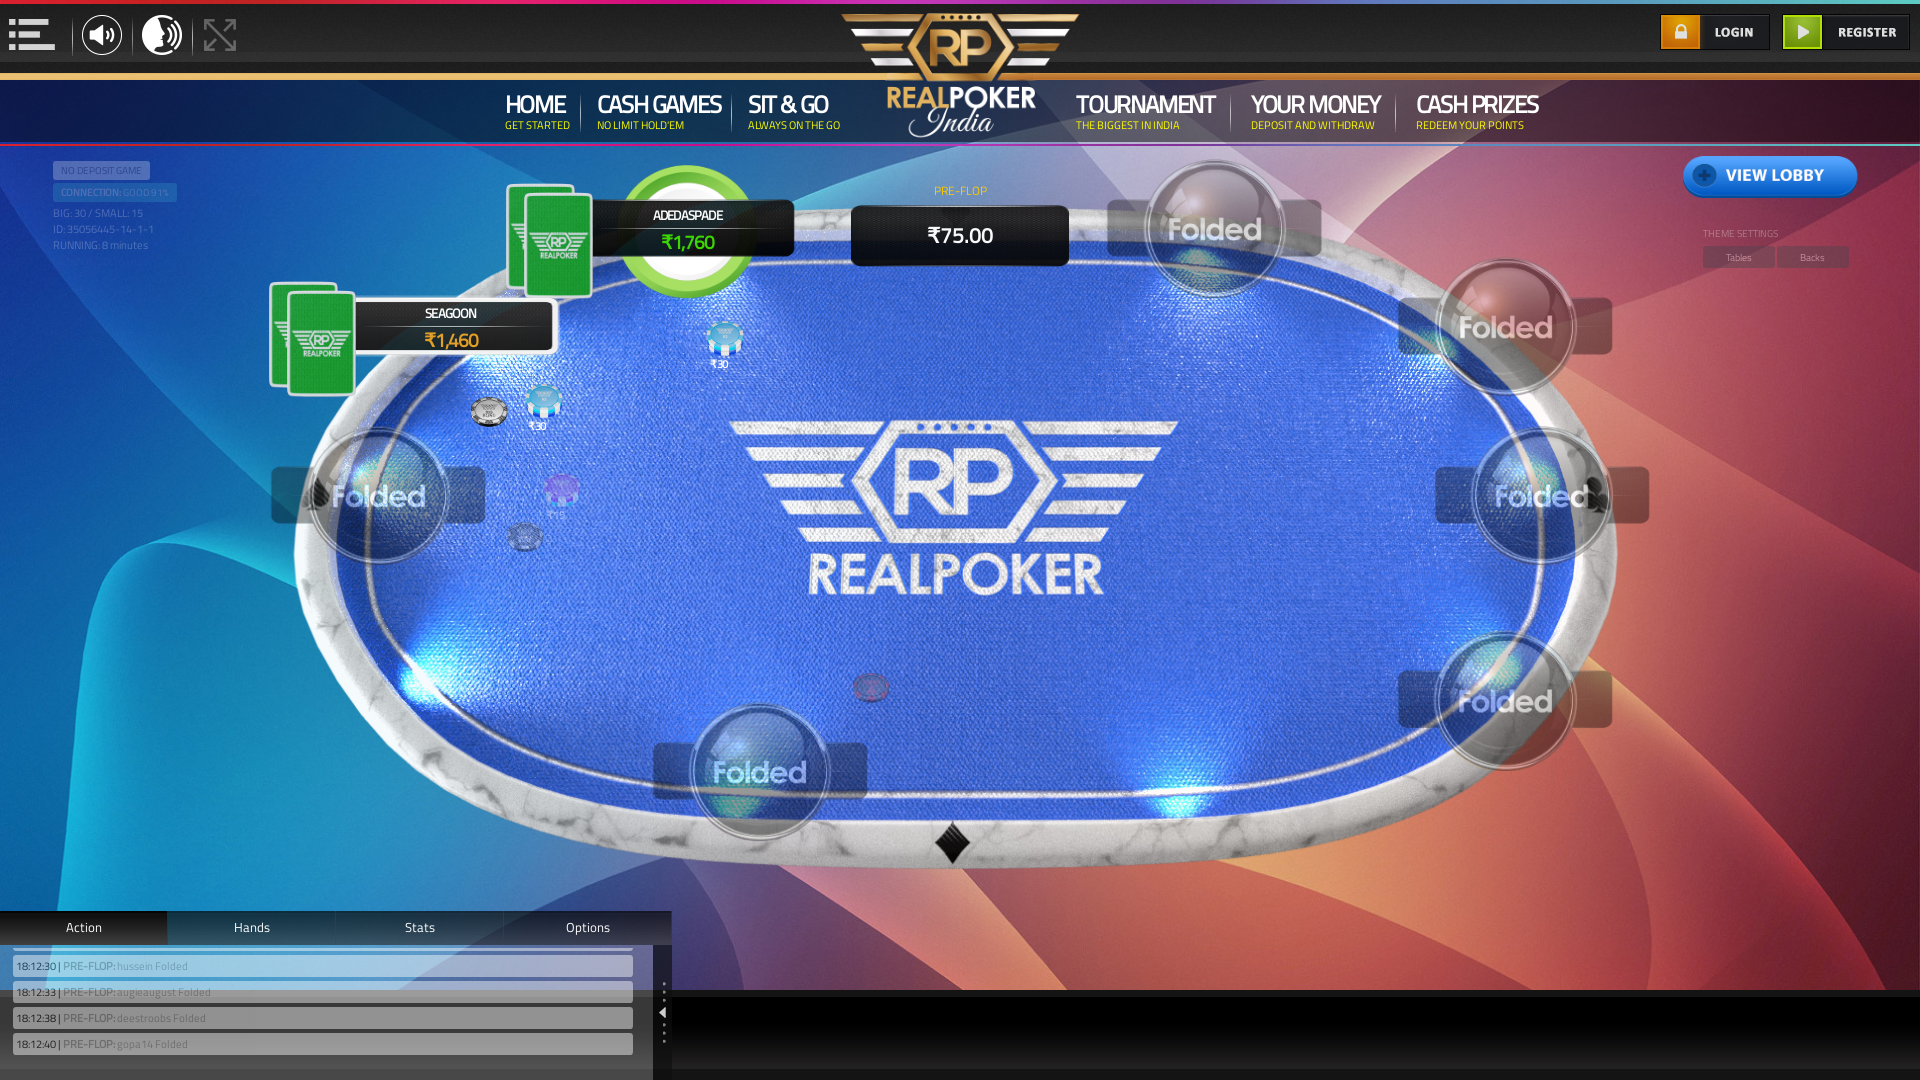 BTM Layout, Bangalore Poker Casino from November